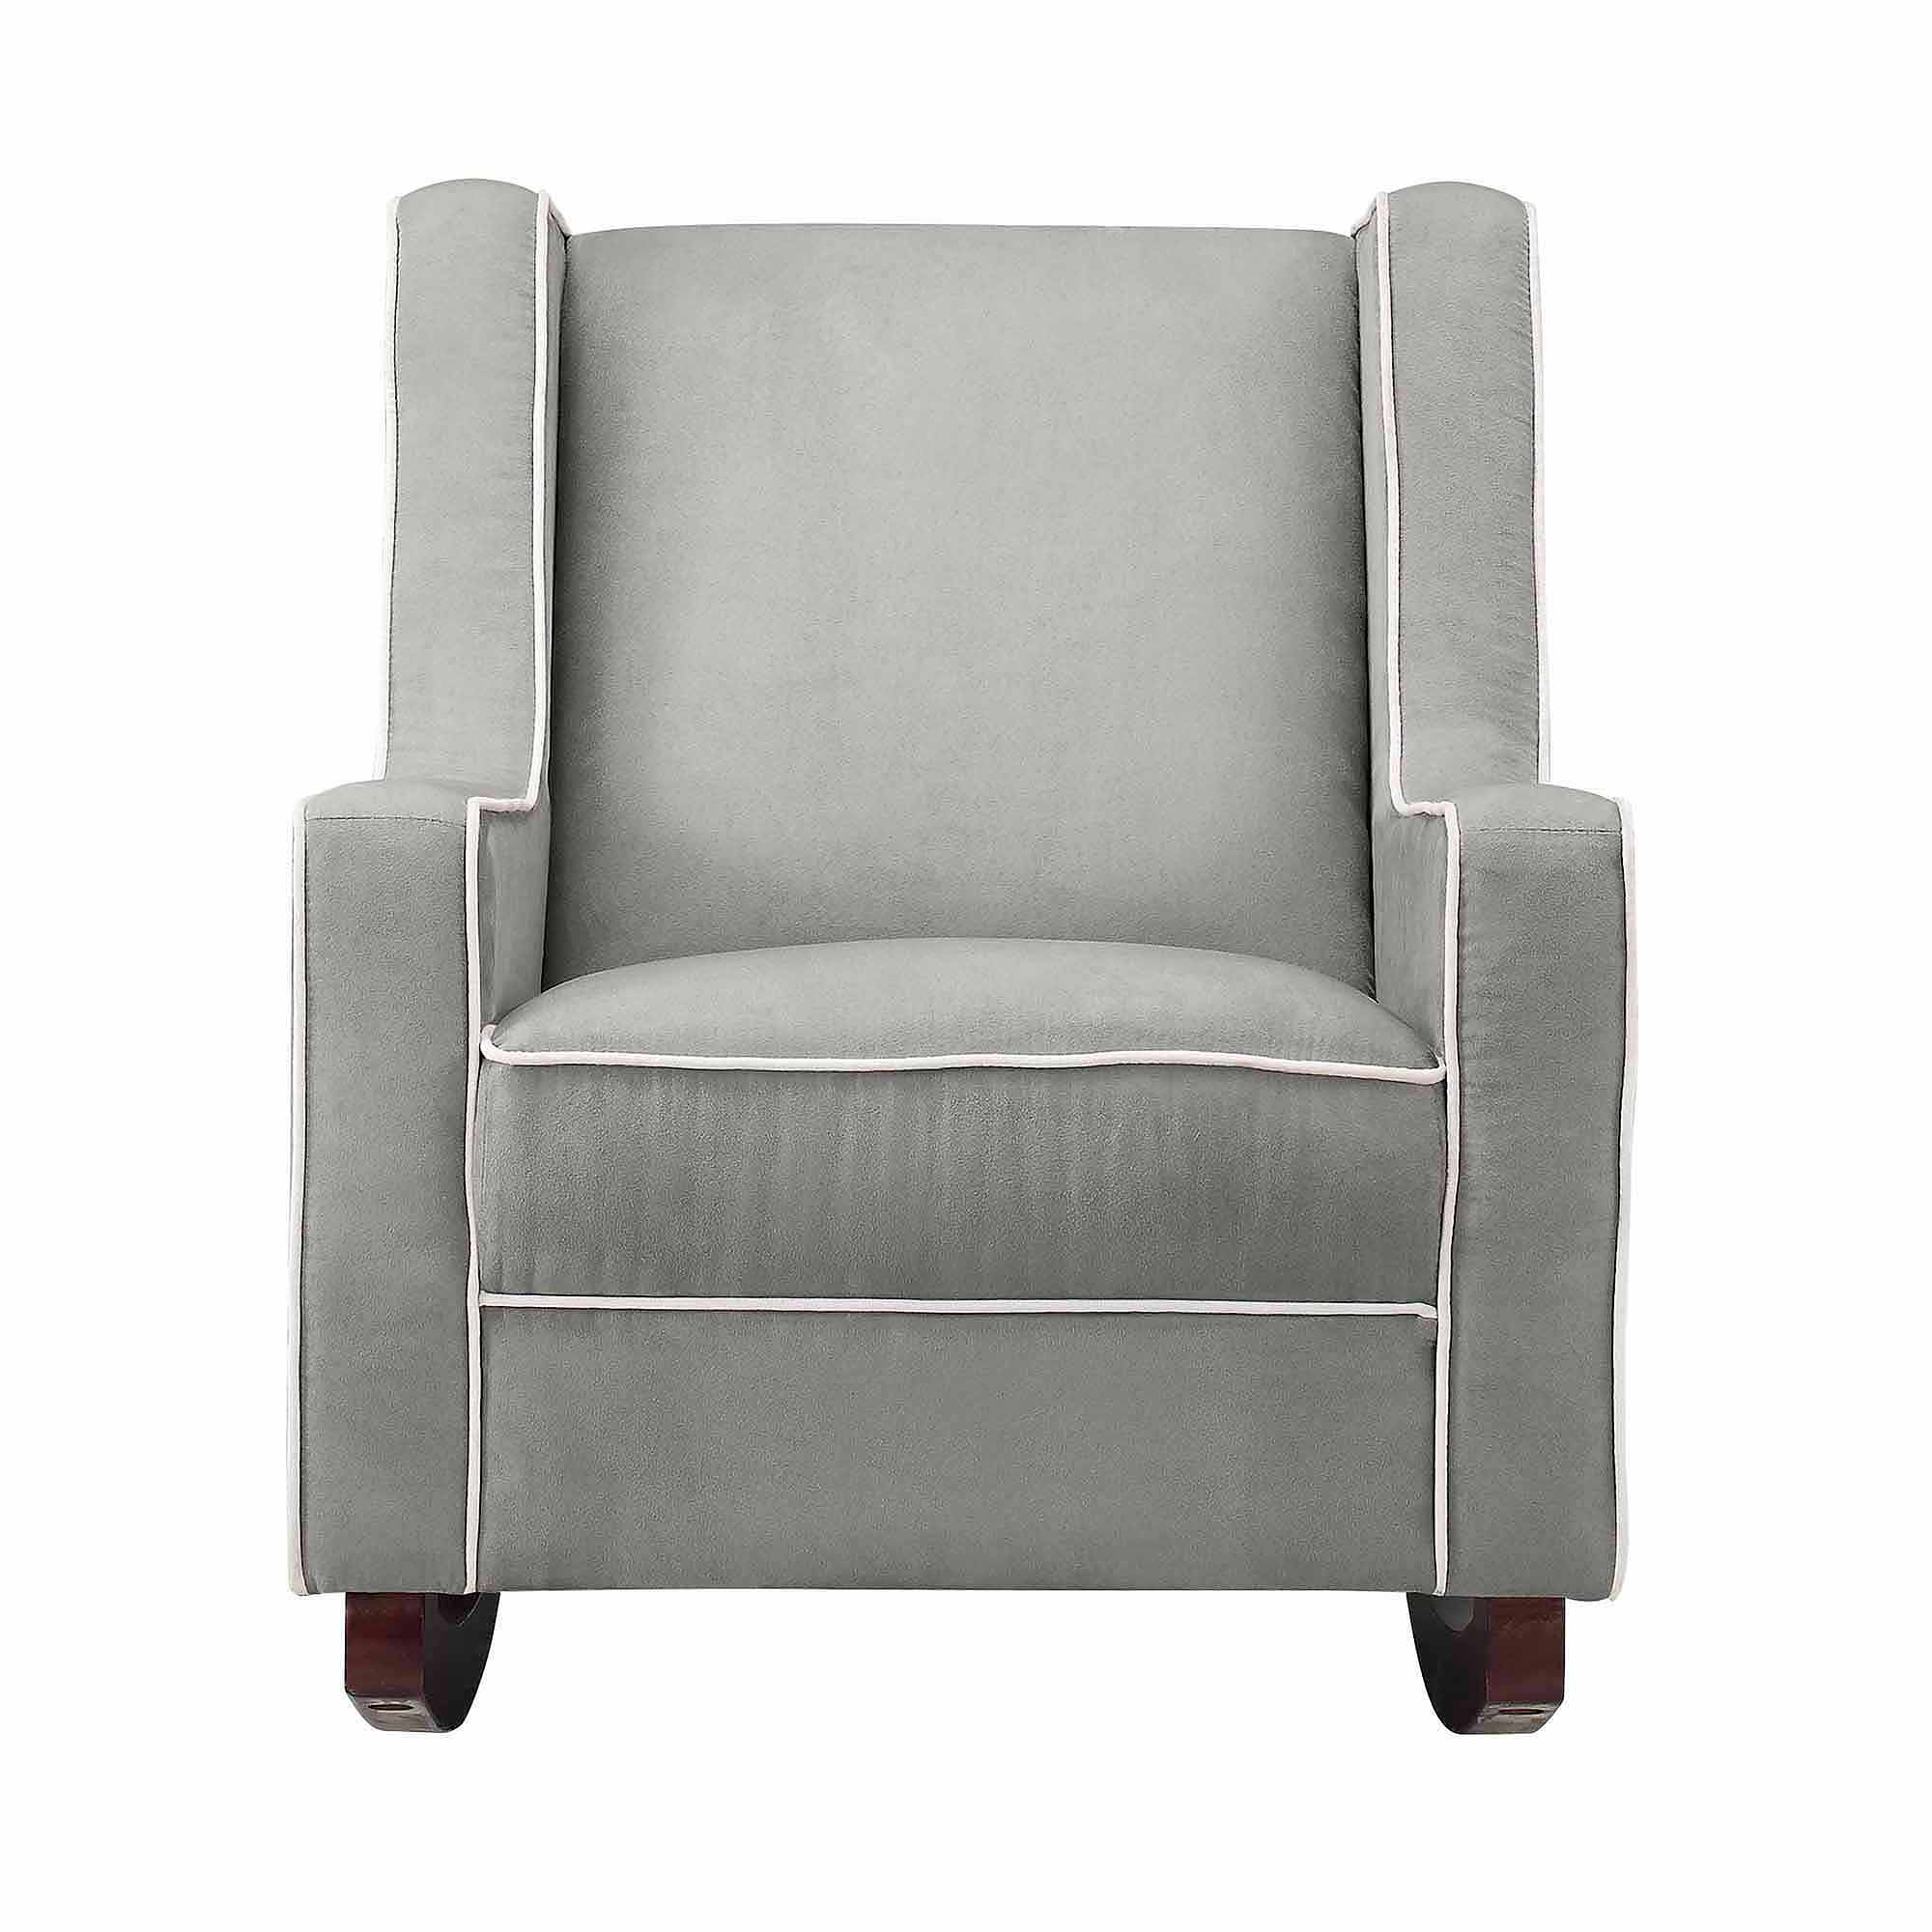 Furniture: Magnificent Walmart Glider Rocker For Fabulous Home Throughout Abbey Swivel Glider Recliners (Photo 3 of 20)